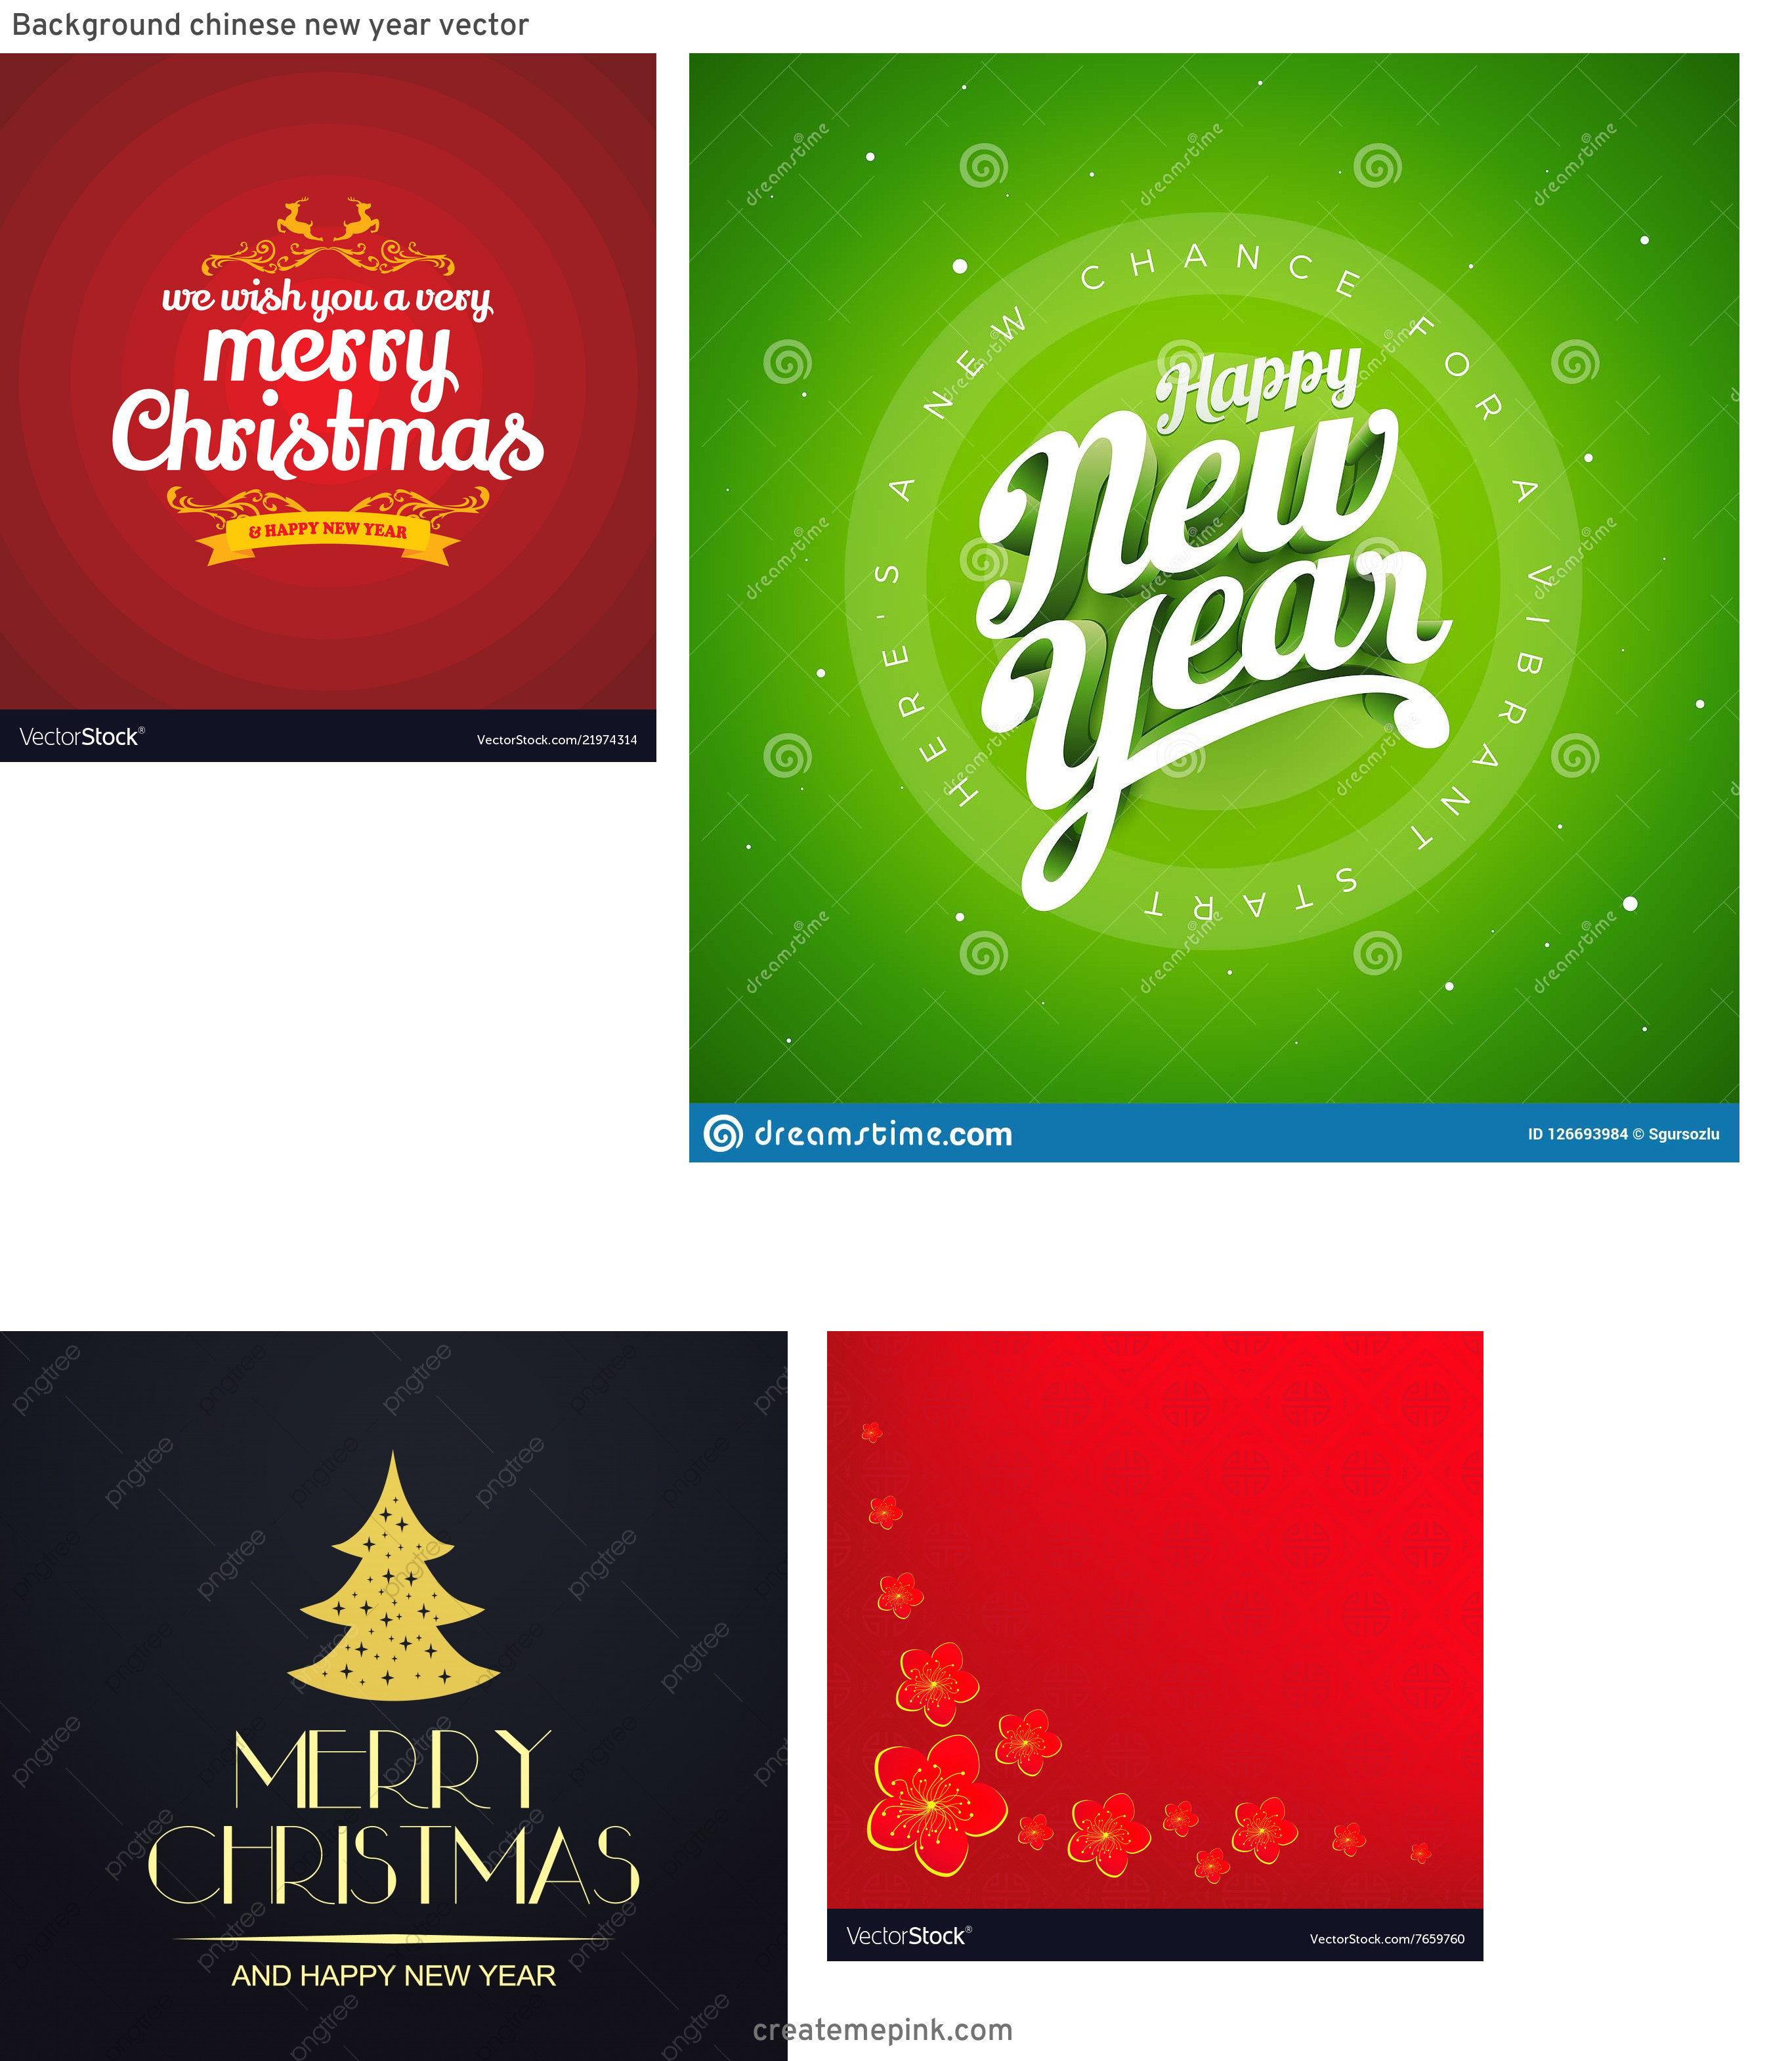 Free New Year Vector: Background Chinese New Year Vector